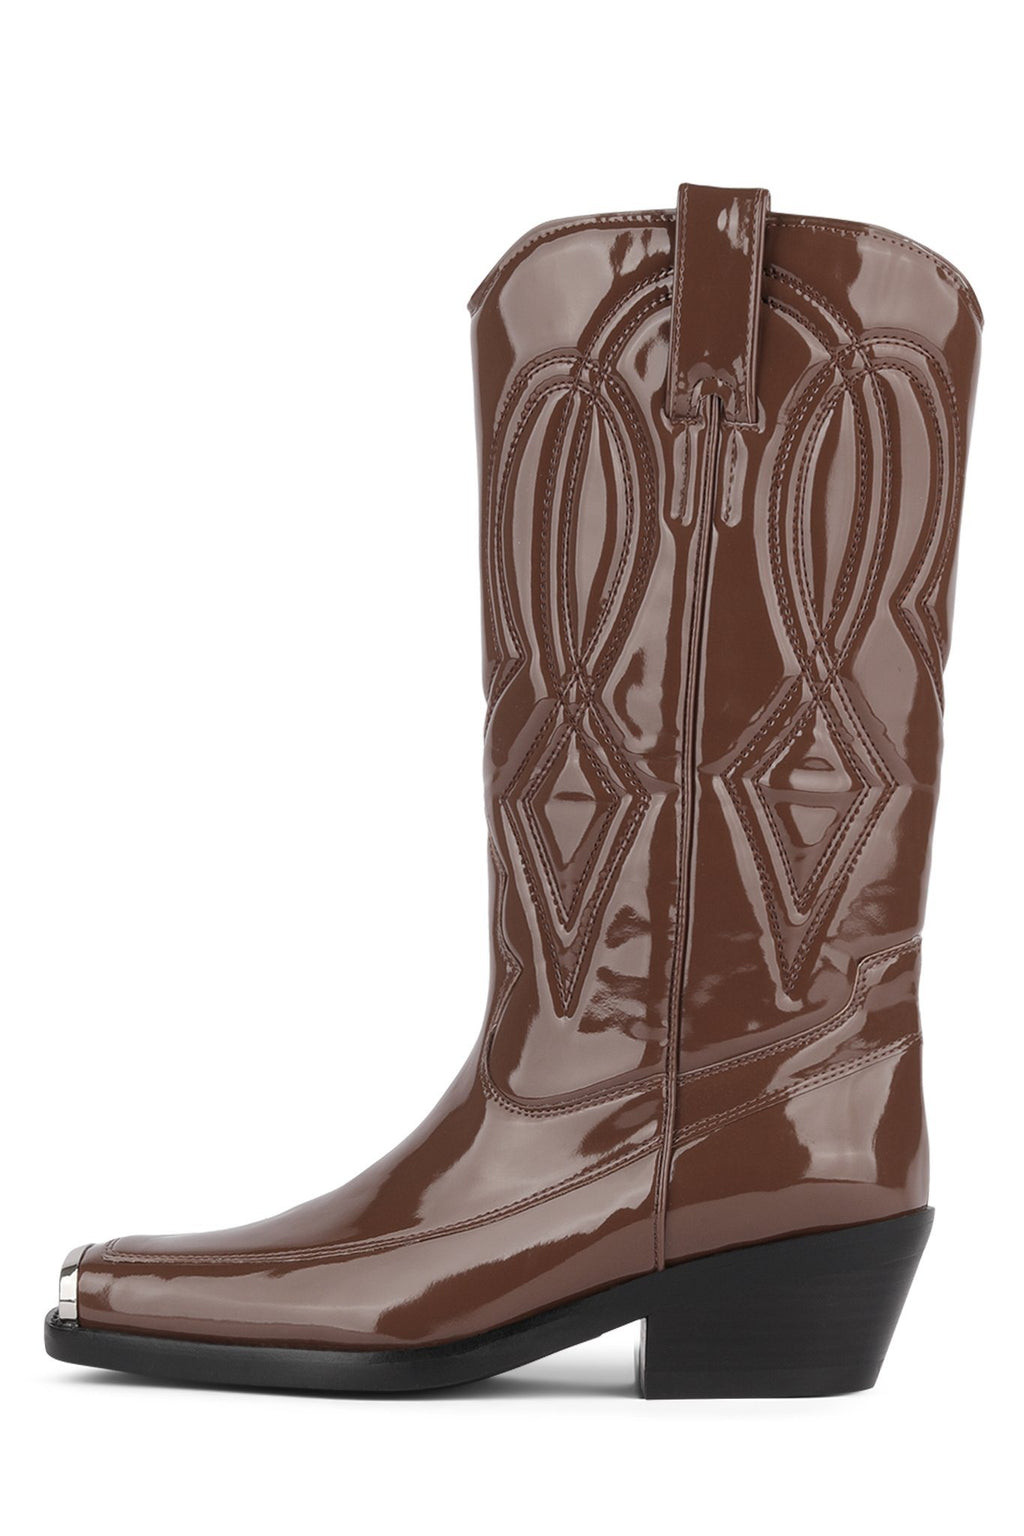 EAGLES Mid-Calf Boot YYH Dark Brown Pat 6